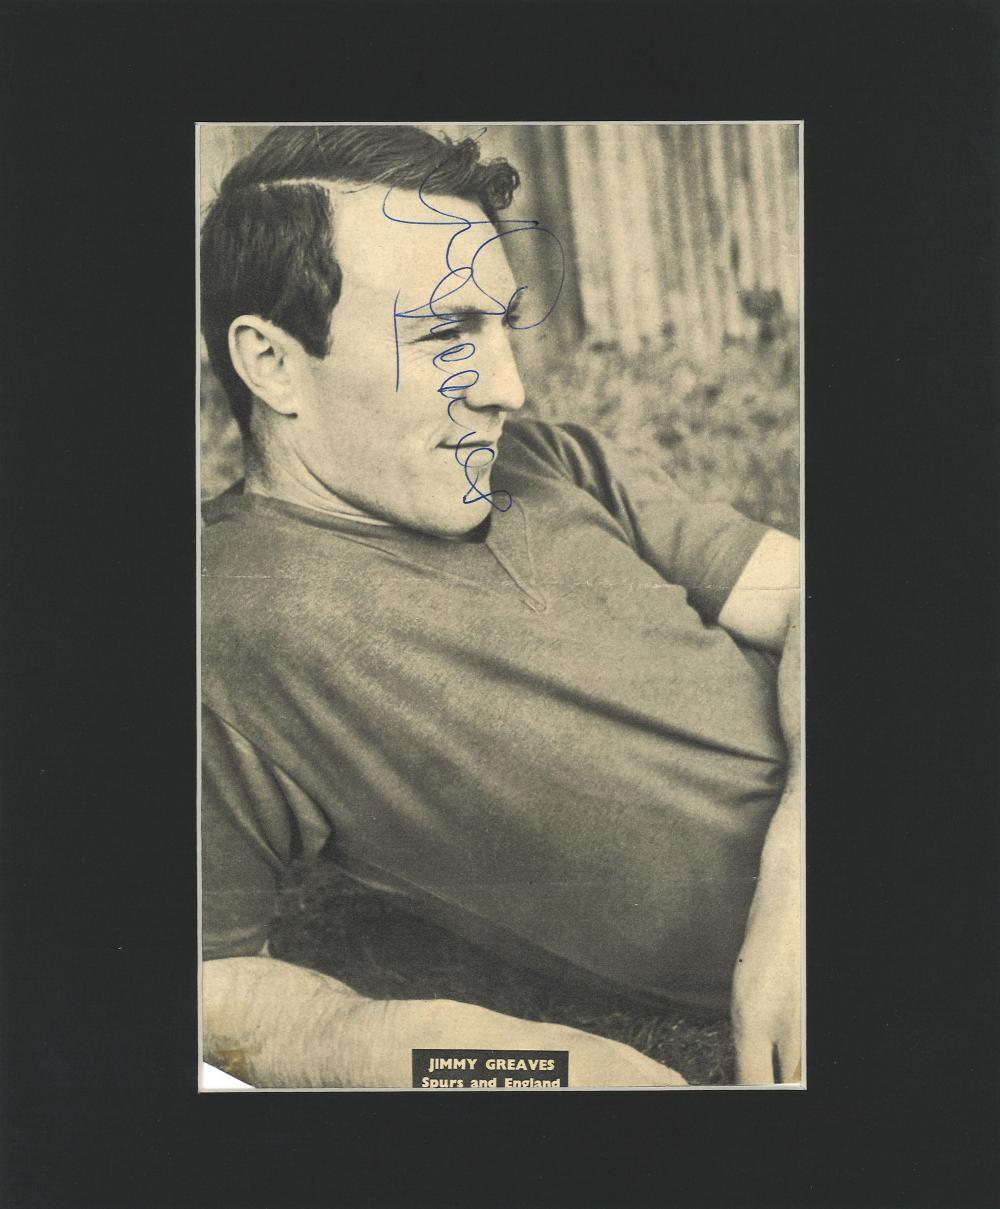 Football Jimmy Greaves signed 12x10 mounted b/w magazine photo. James Peter Greaves (born 20